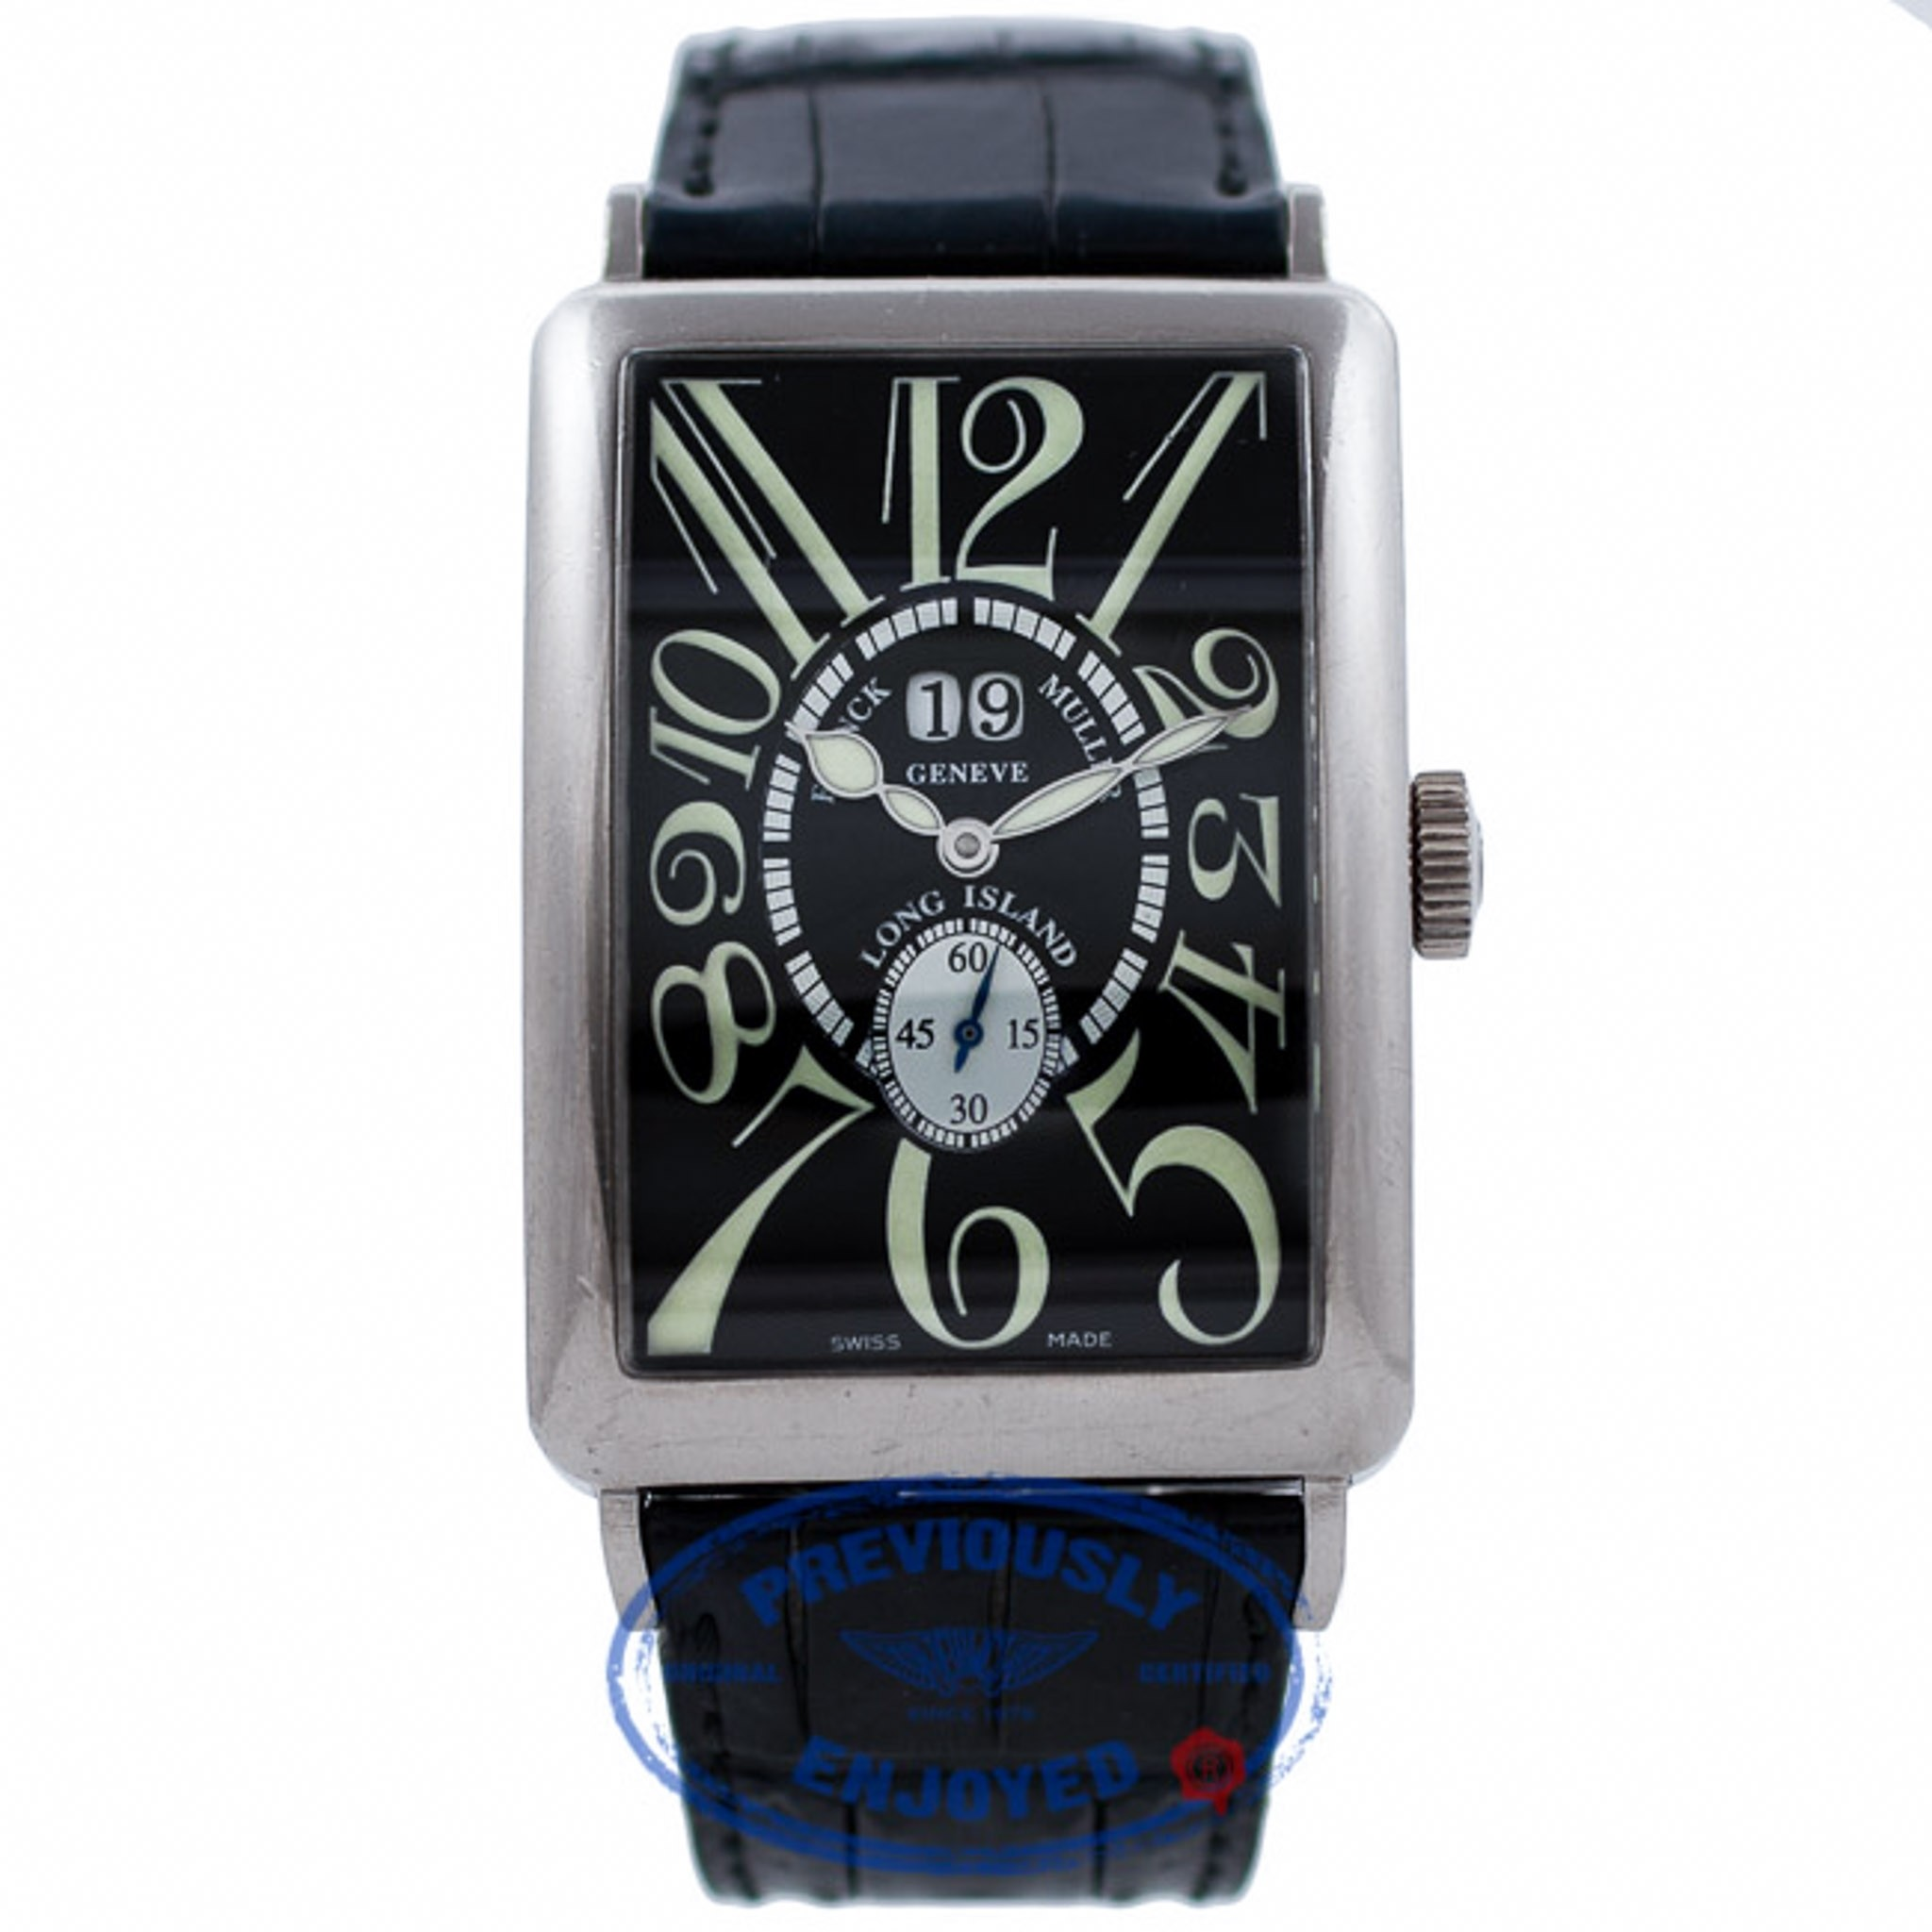 Franck Muller Long Island Grand Date 18k White Gold Black Dial 1200 S6 GG CZVKUN - Beverly Hills Watch Company Watch Store